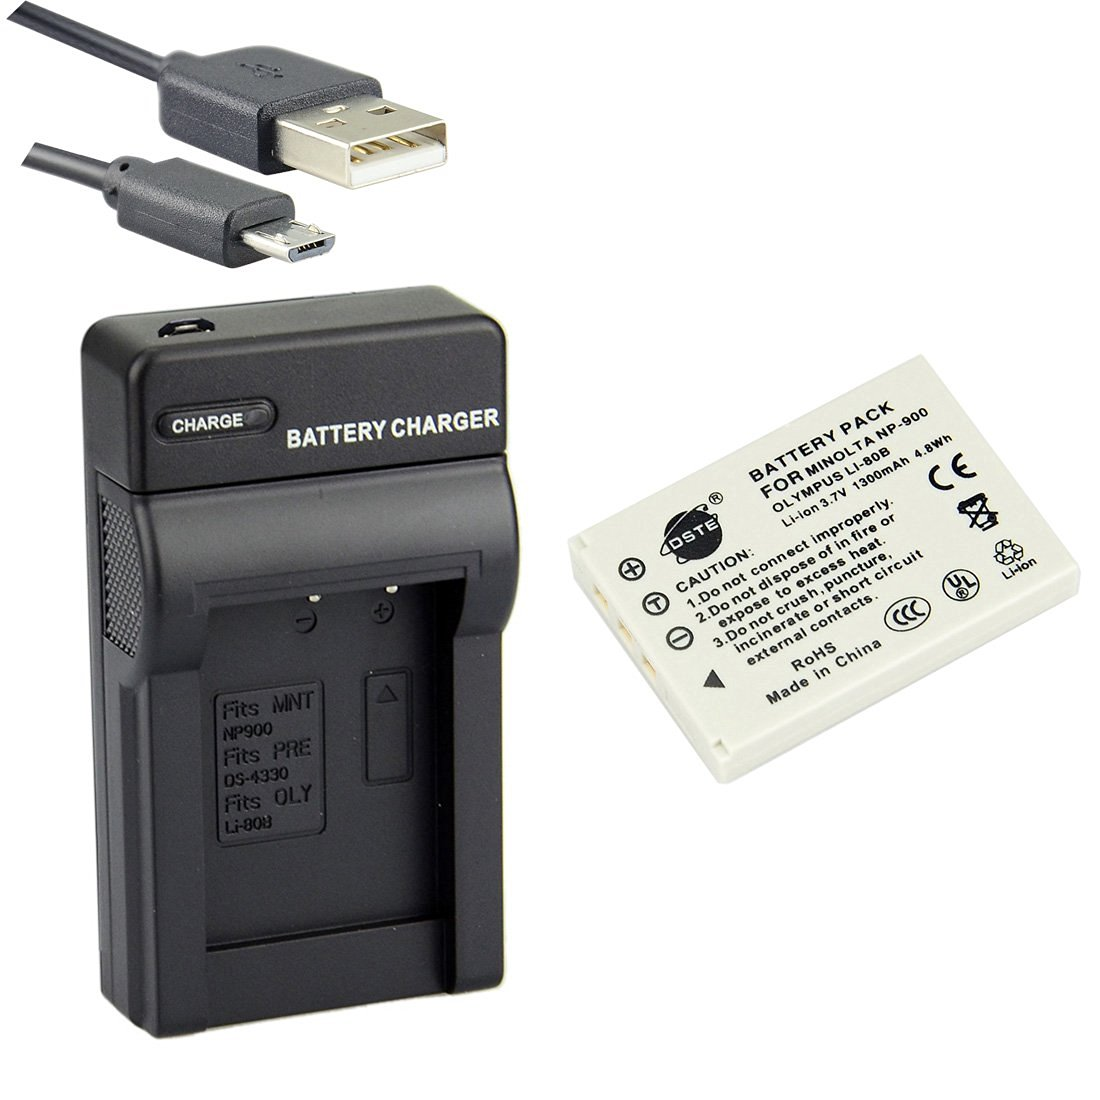 DSTE Li-80B Li-ion Battery and Micro USB Charger Suit for Olympus T-100,T-110,X-36